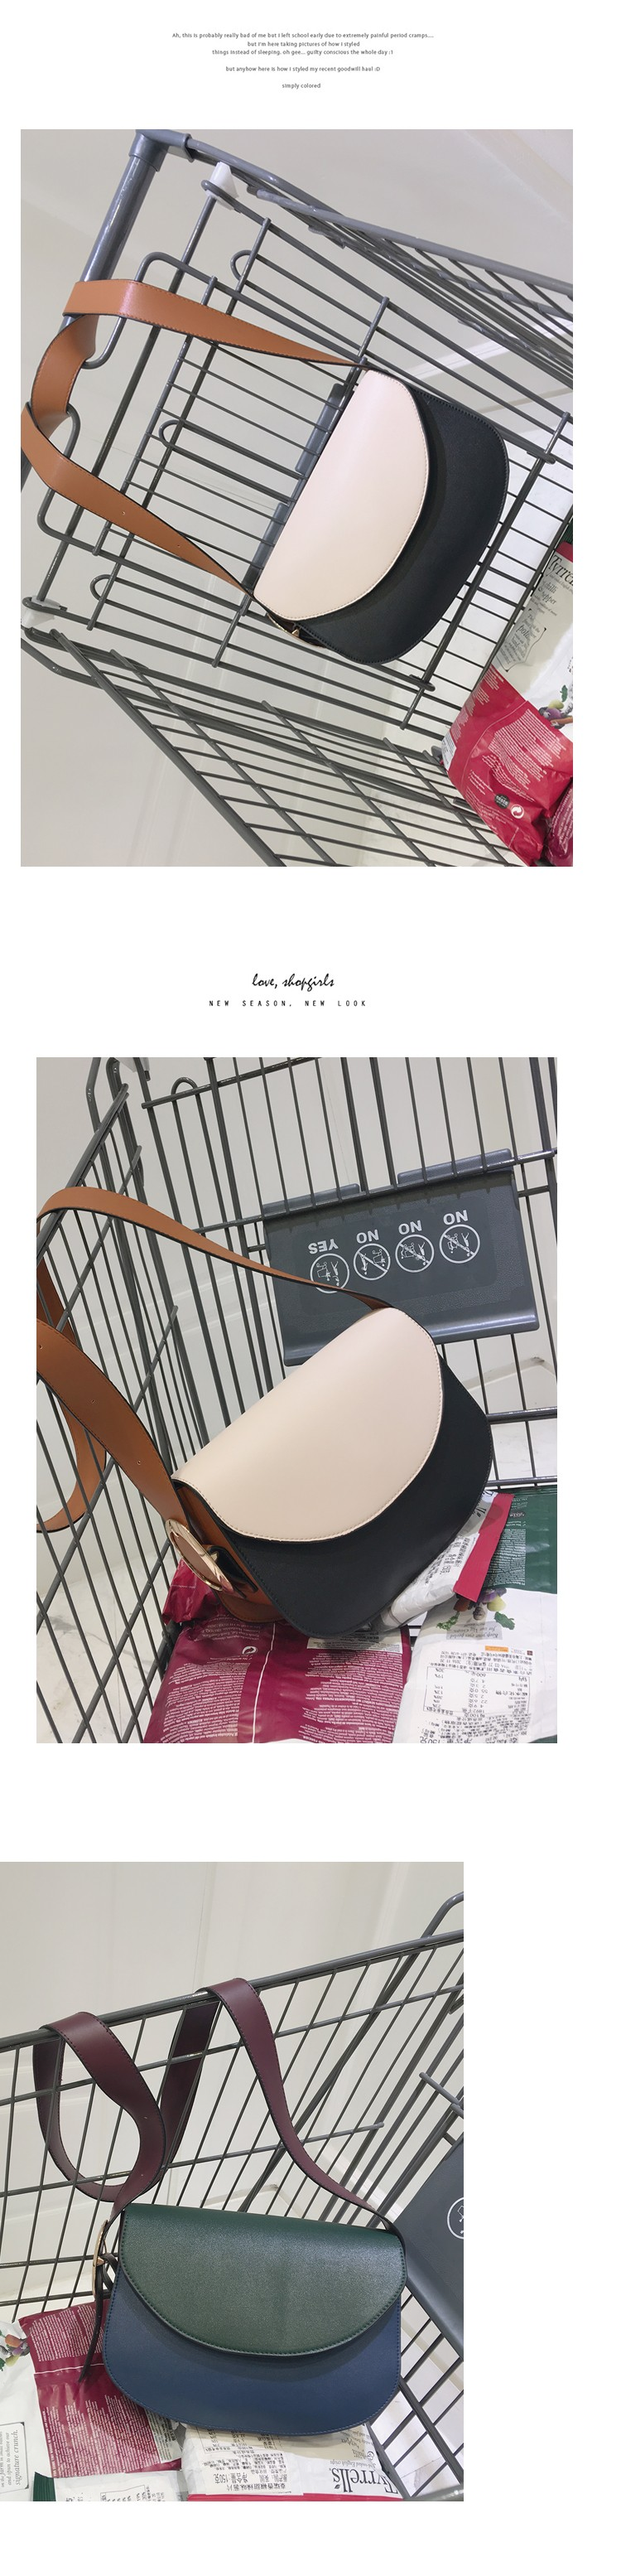 2016 Women Leather Handbags Famous Brand Women Small Messenger Bags Female Crossbody Shoulder Bags Clutch Purse Hit Color Bag 1